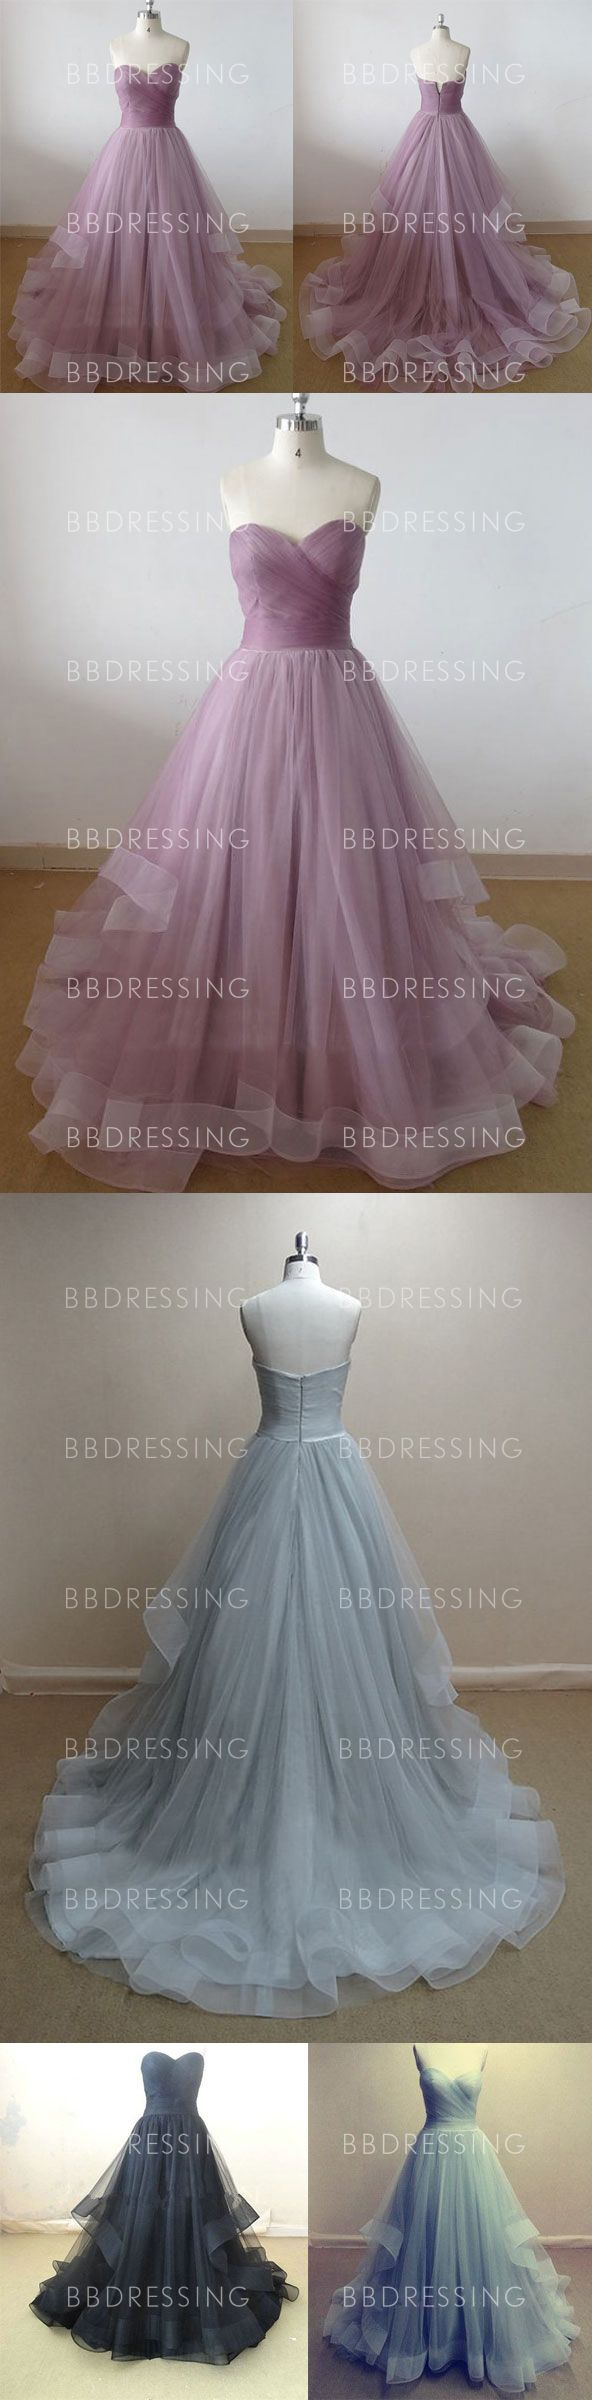 2016 New Strapless Prom Dresses Sweetheart A Line Tulle Prom Dresses pst0024 on Storenvy